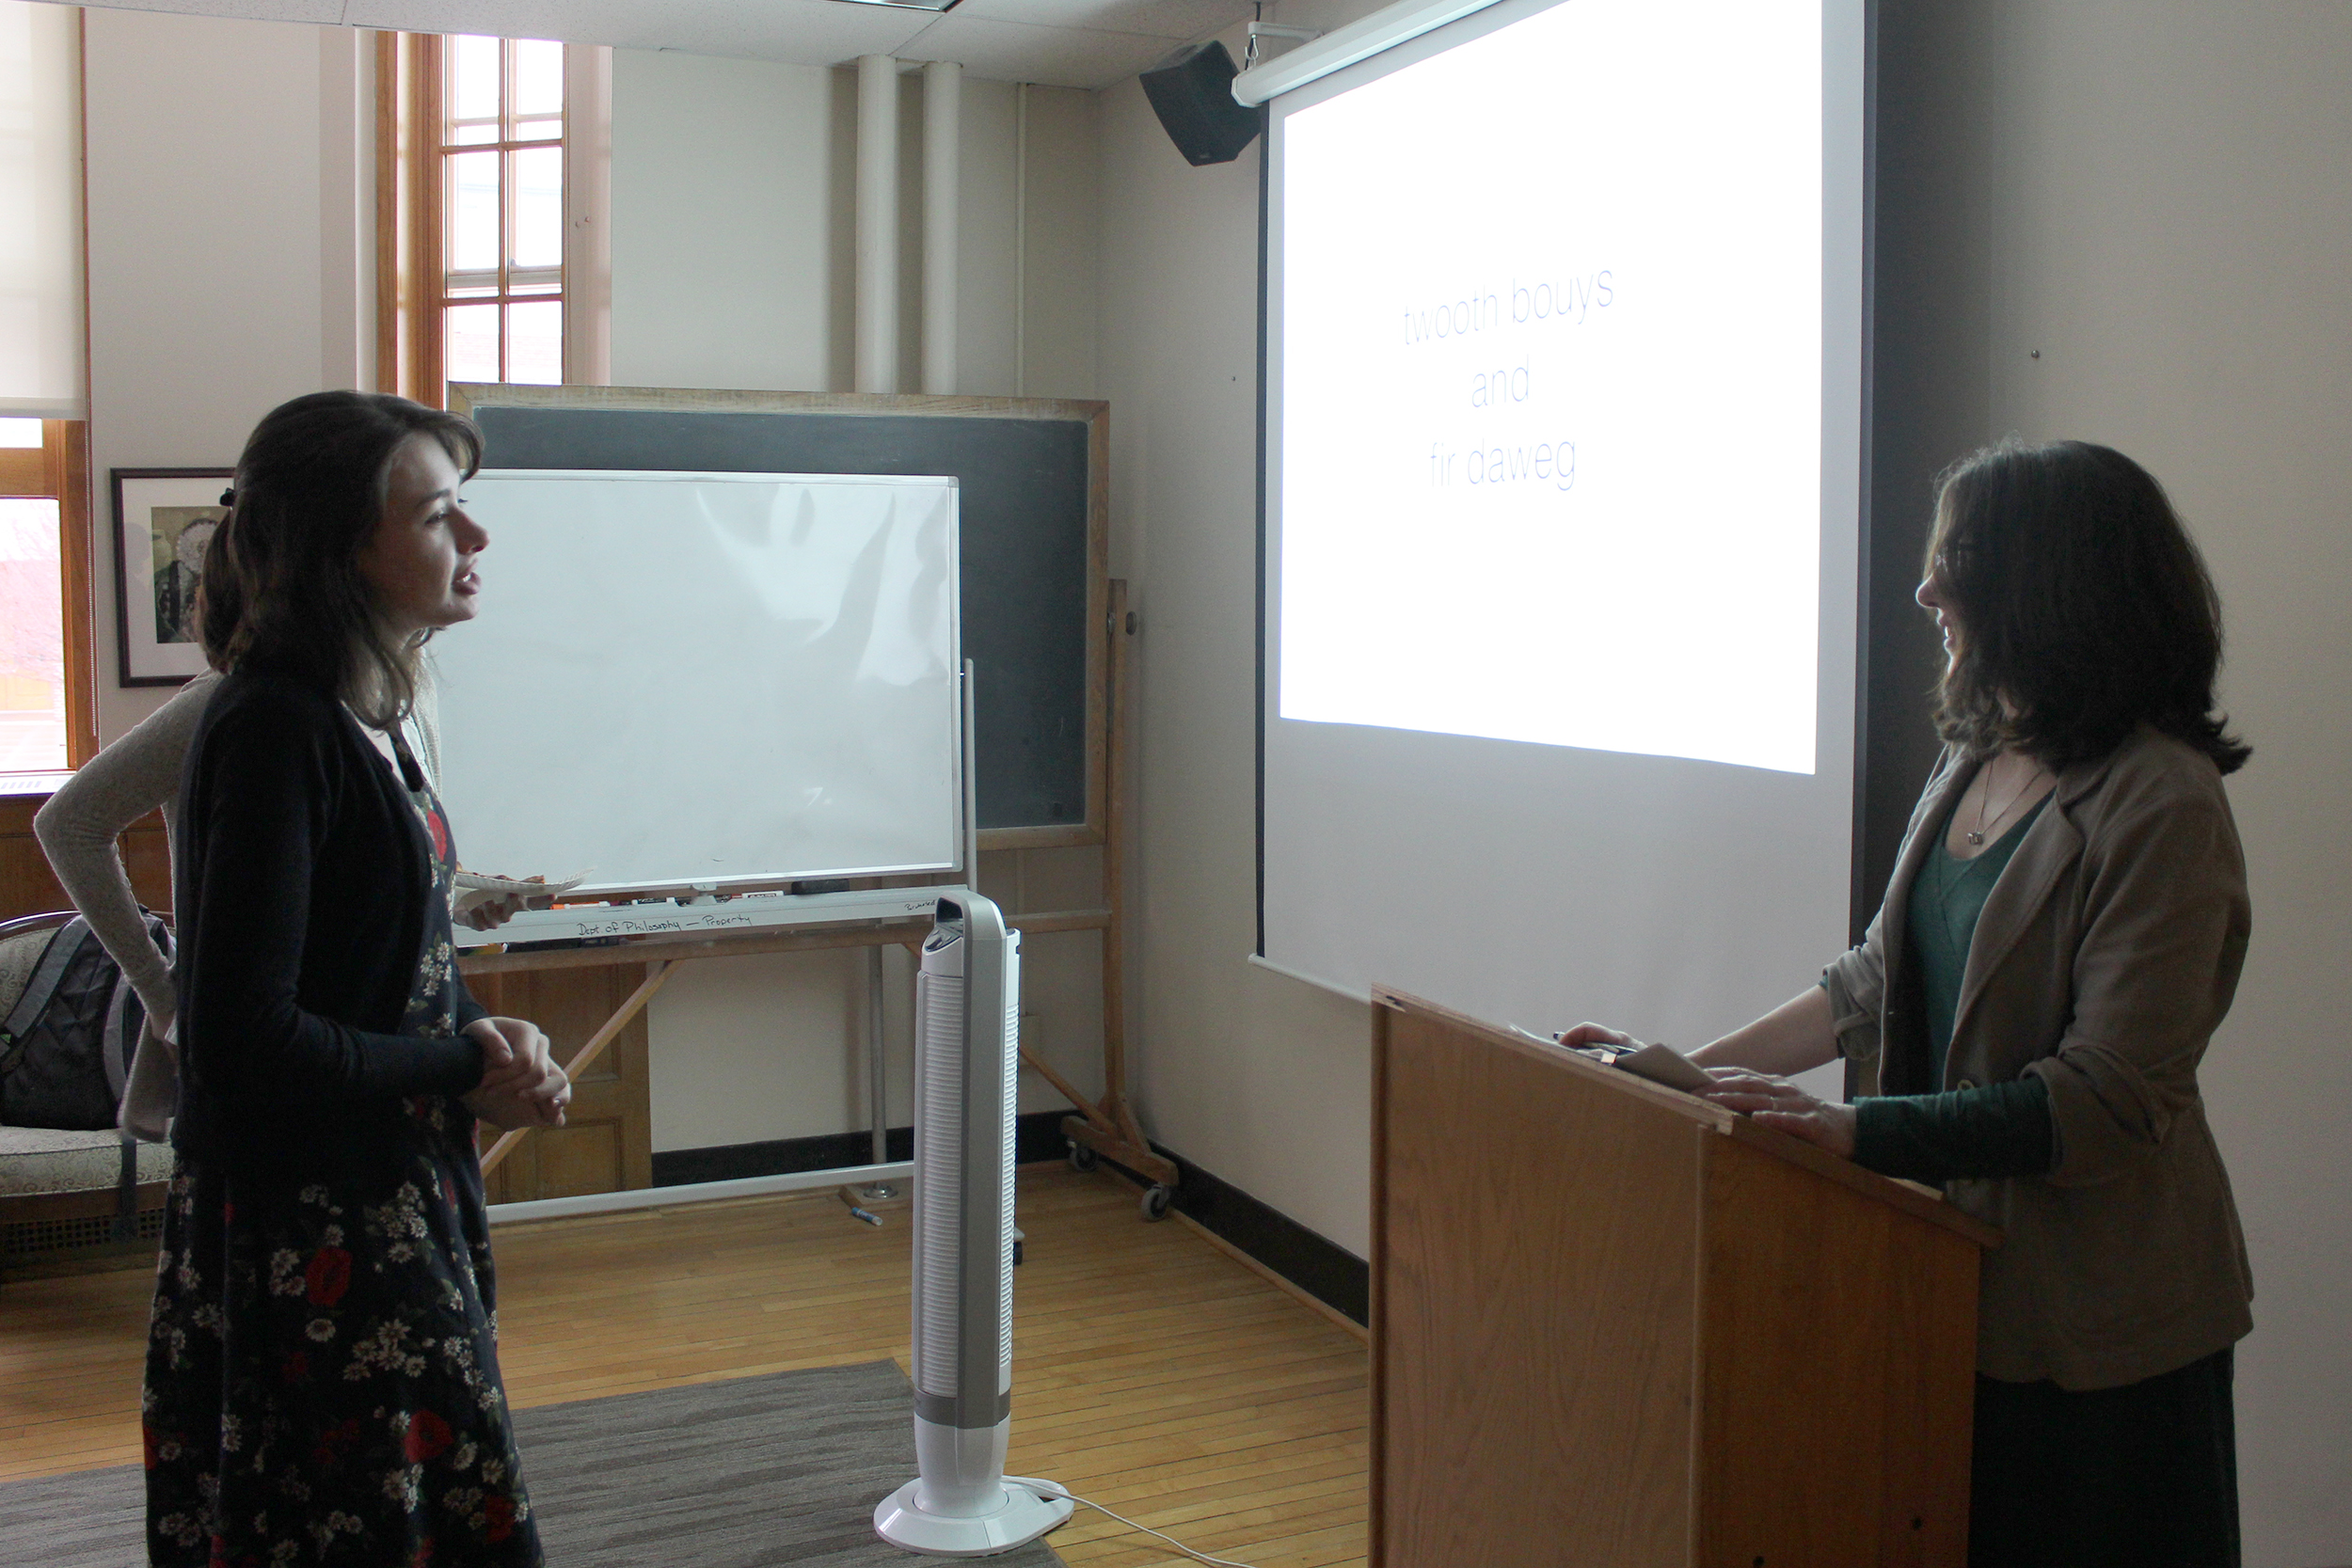 Distinguished Teaching Professor of English Beth McCoy presented her paper on Wednesday April 25. McCoy discussed the racism present throughout American history and the dehumanization associated with it (Malachy Dempsey/Incoming managing editor).